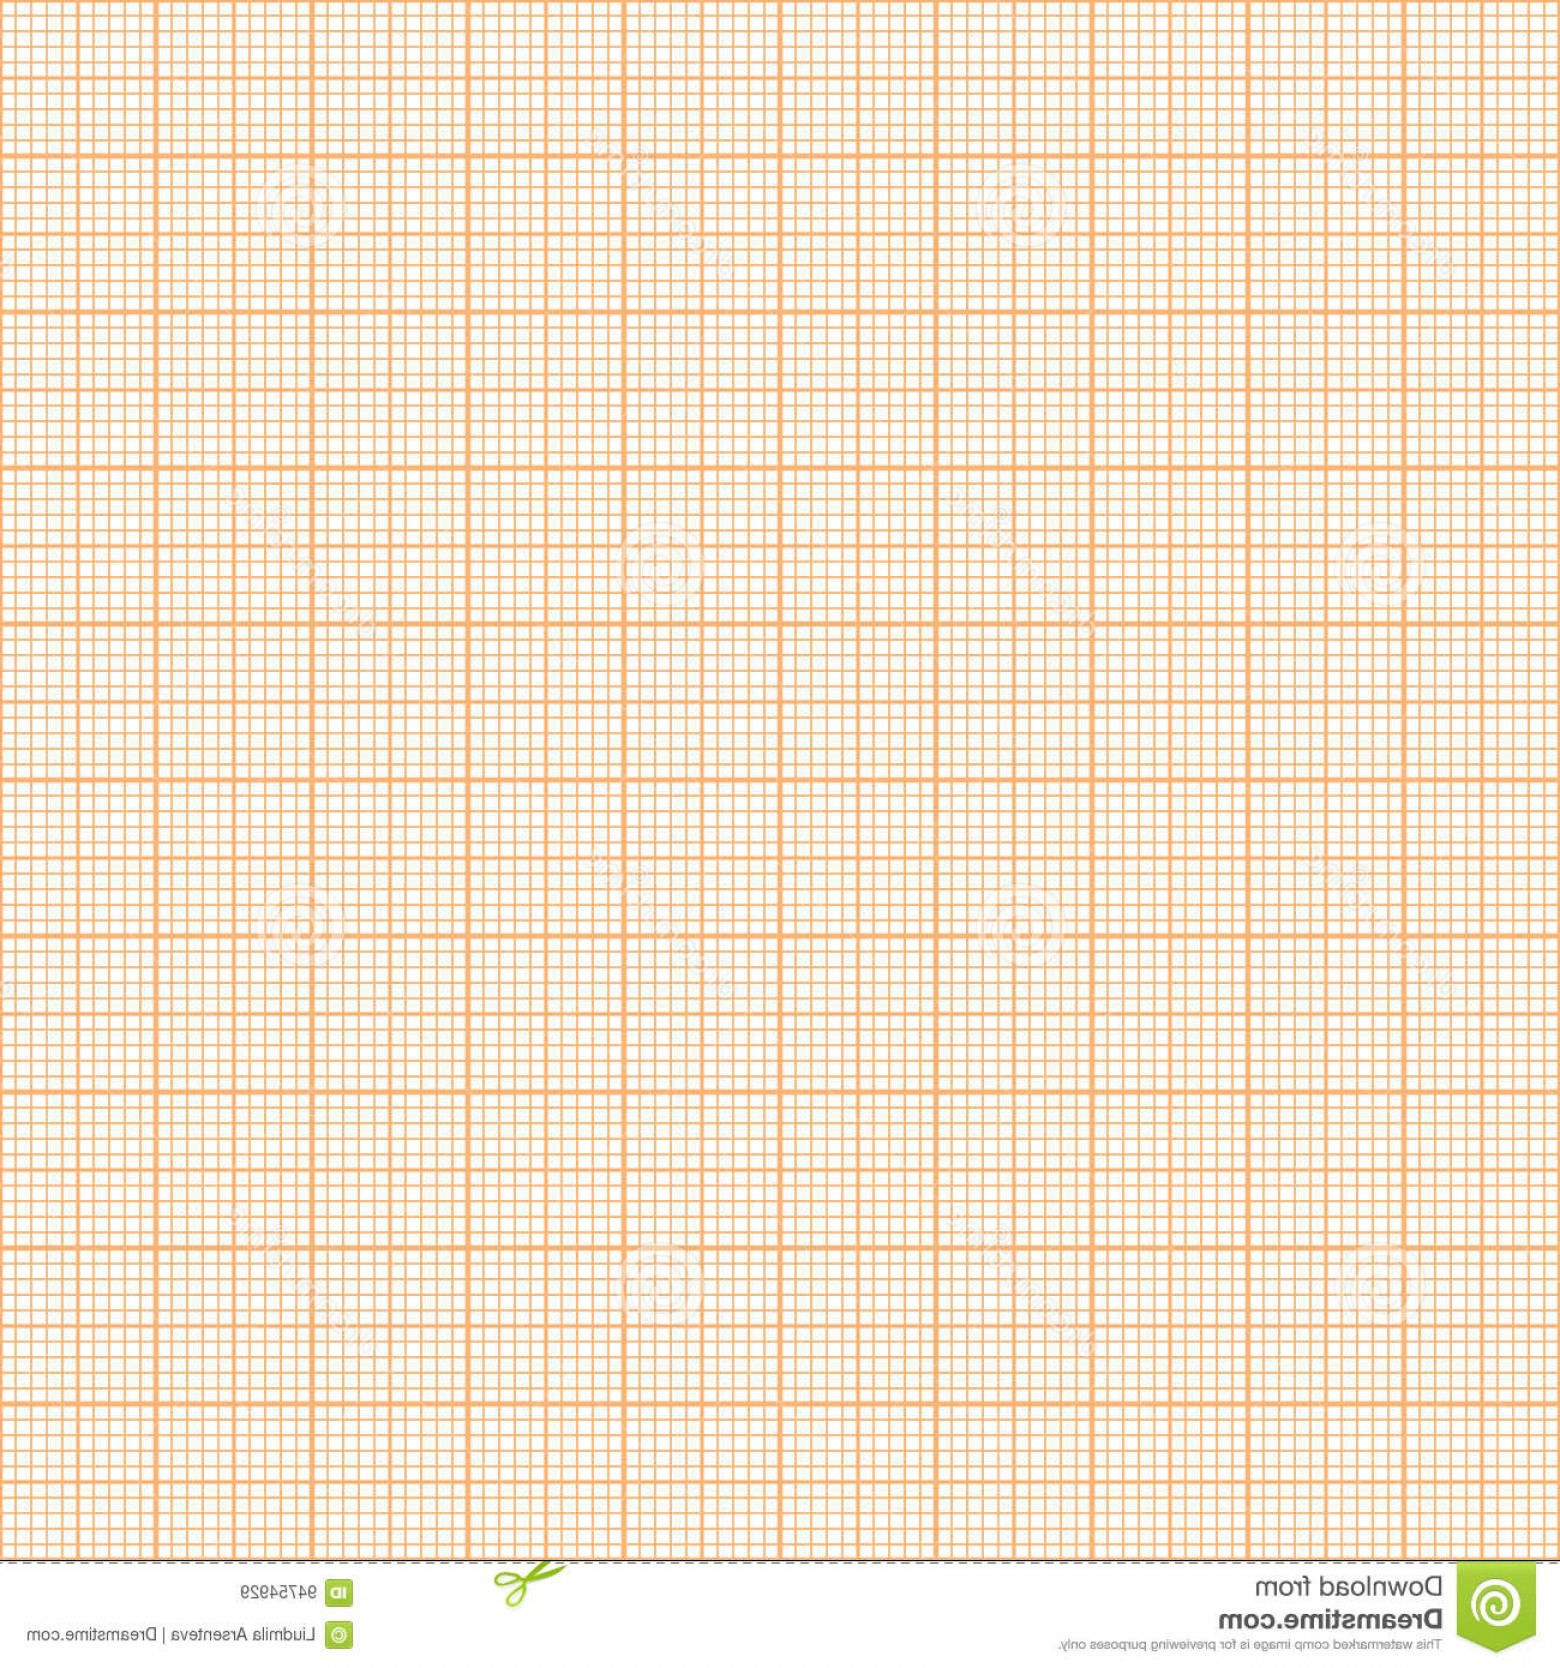 Security Vector Patterns: Stock Illustration Vector Orange Metric Graph Paper Seamless Pattern Mm Grid Accented Every Centimeter Image